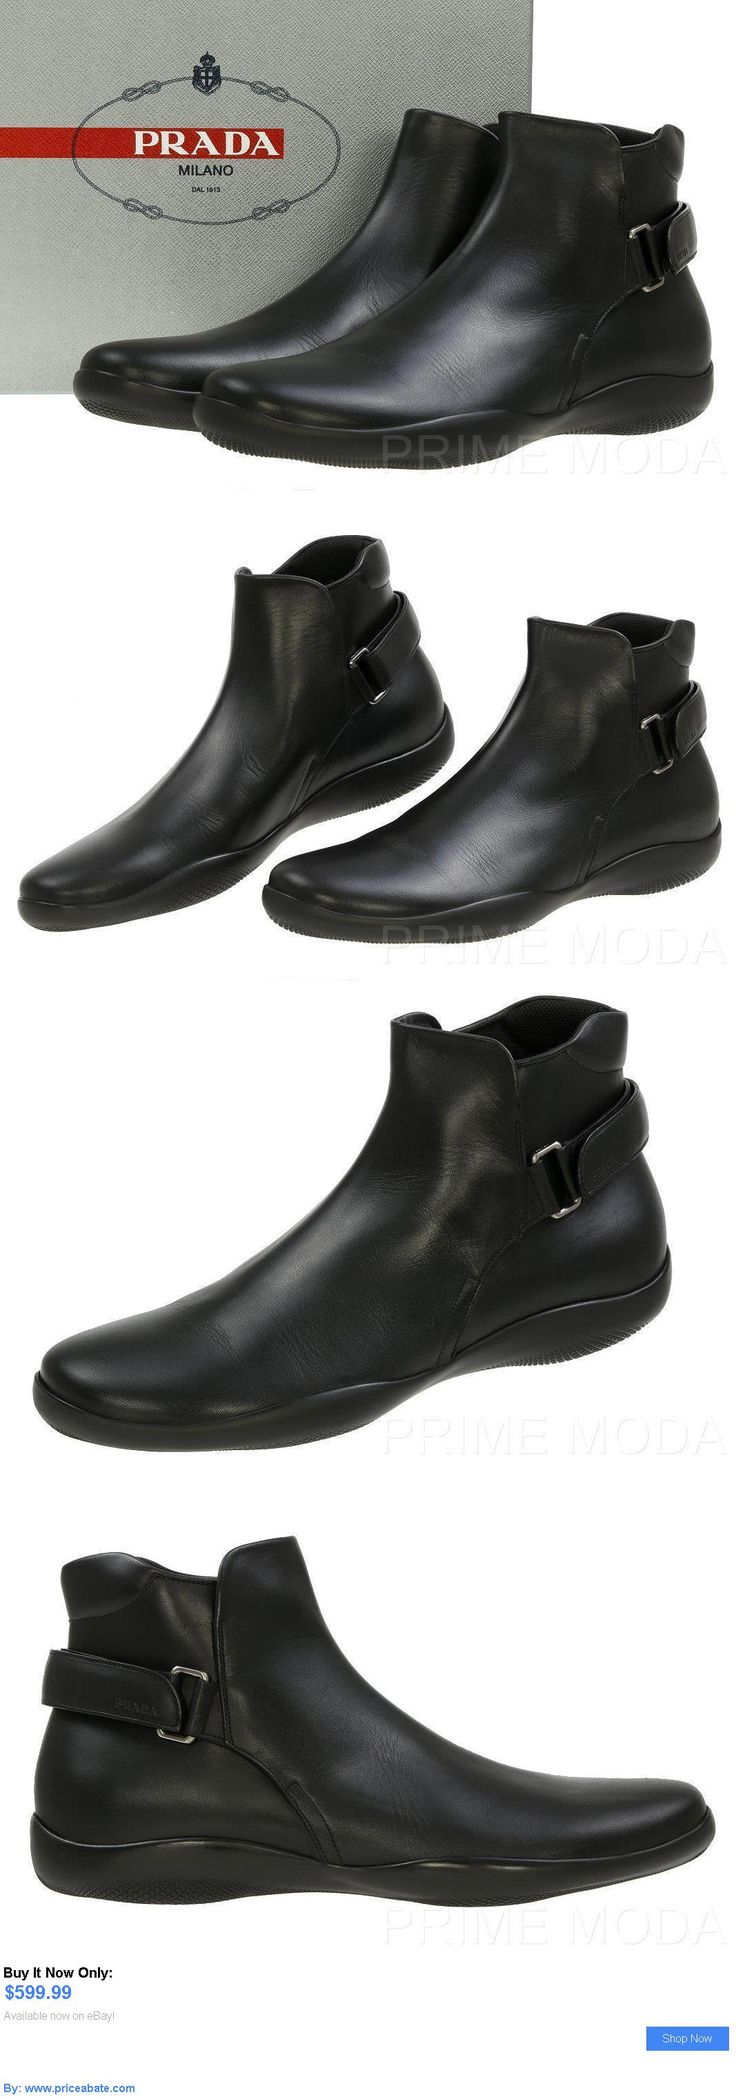 Men Shoes: New Prada Mens Black Leather Logo Ankle Boots Shoes 10/Us 11 BUY IT NOW ONLY: $599.99 #priceabateMenShoes OR #priceabate